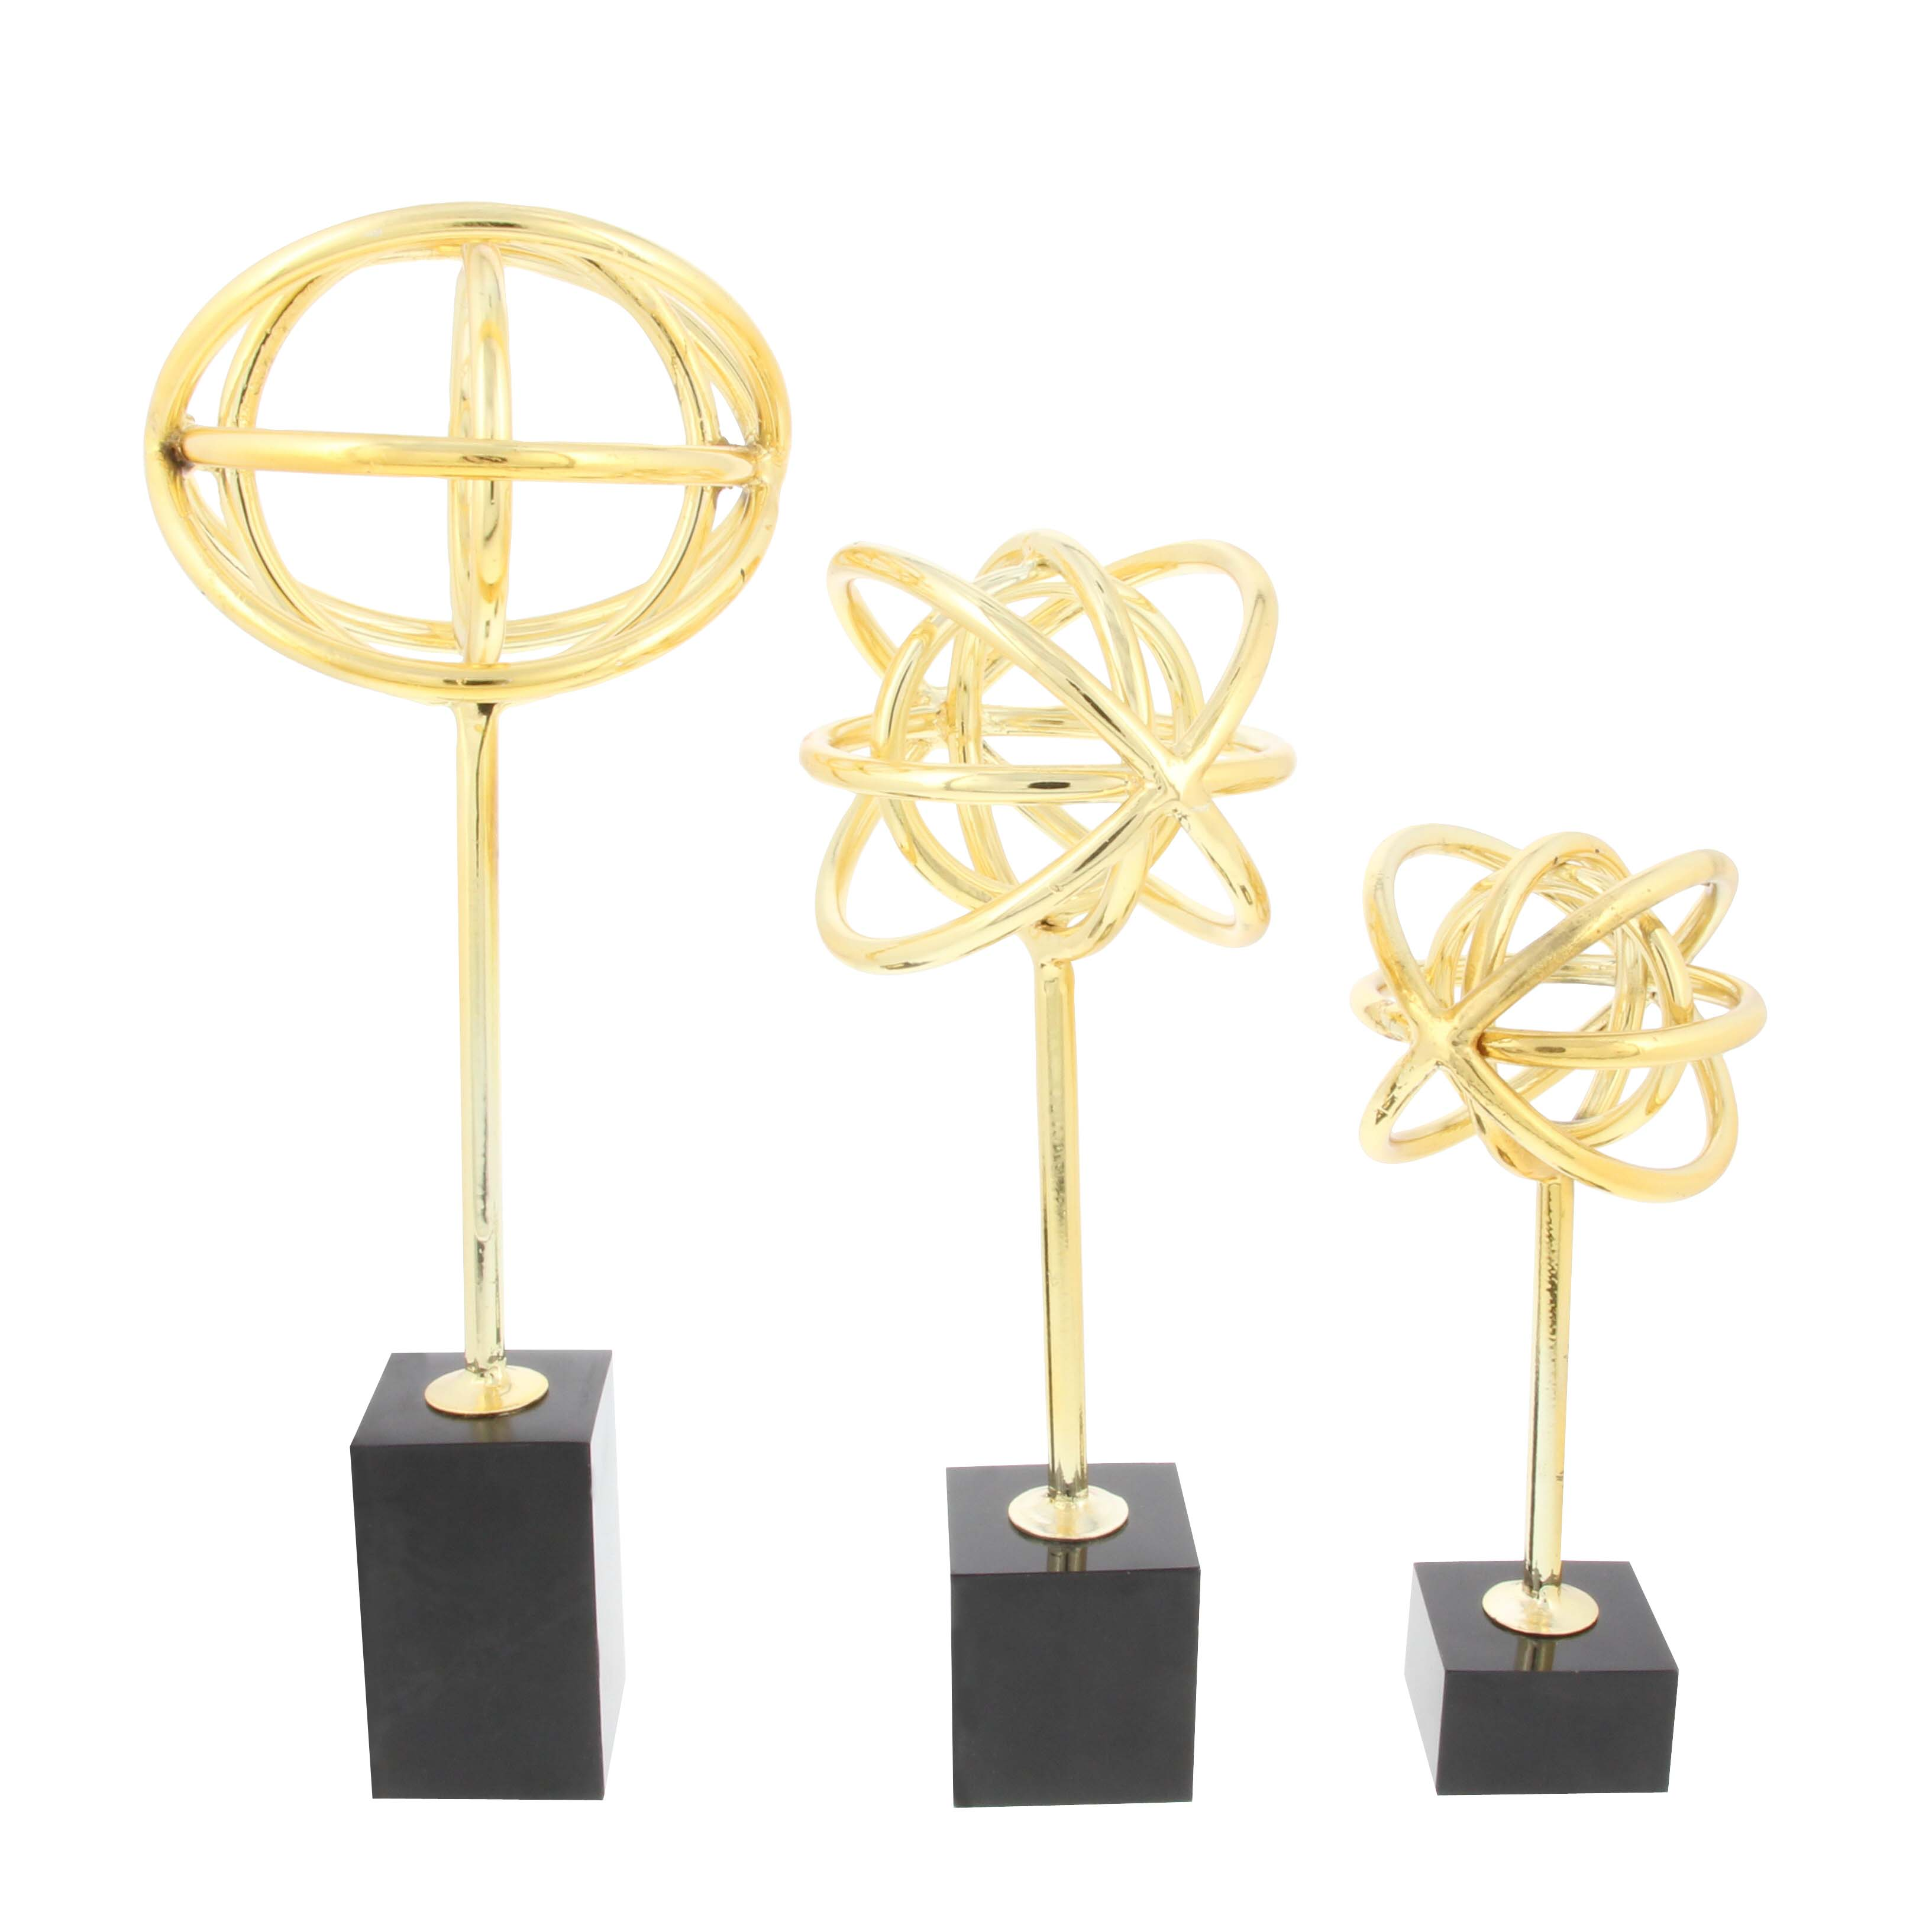 Decmode Set of 3 Modern 8, 12 and 10 Inch Iron and Marble Armillary Sculptures, Gold by DecMode